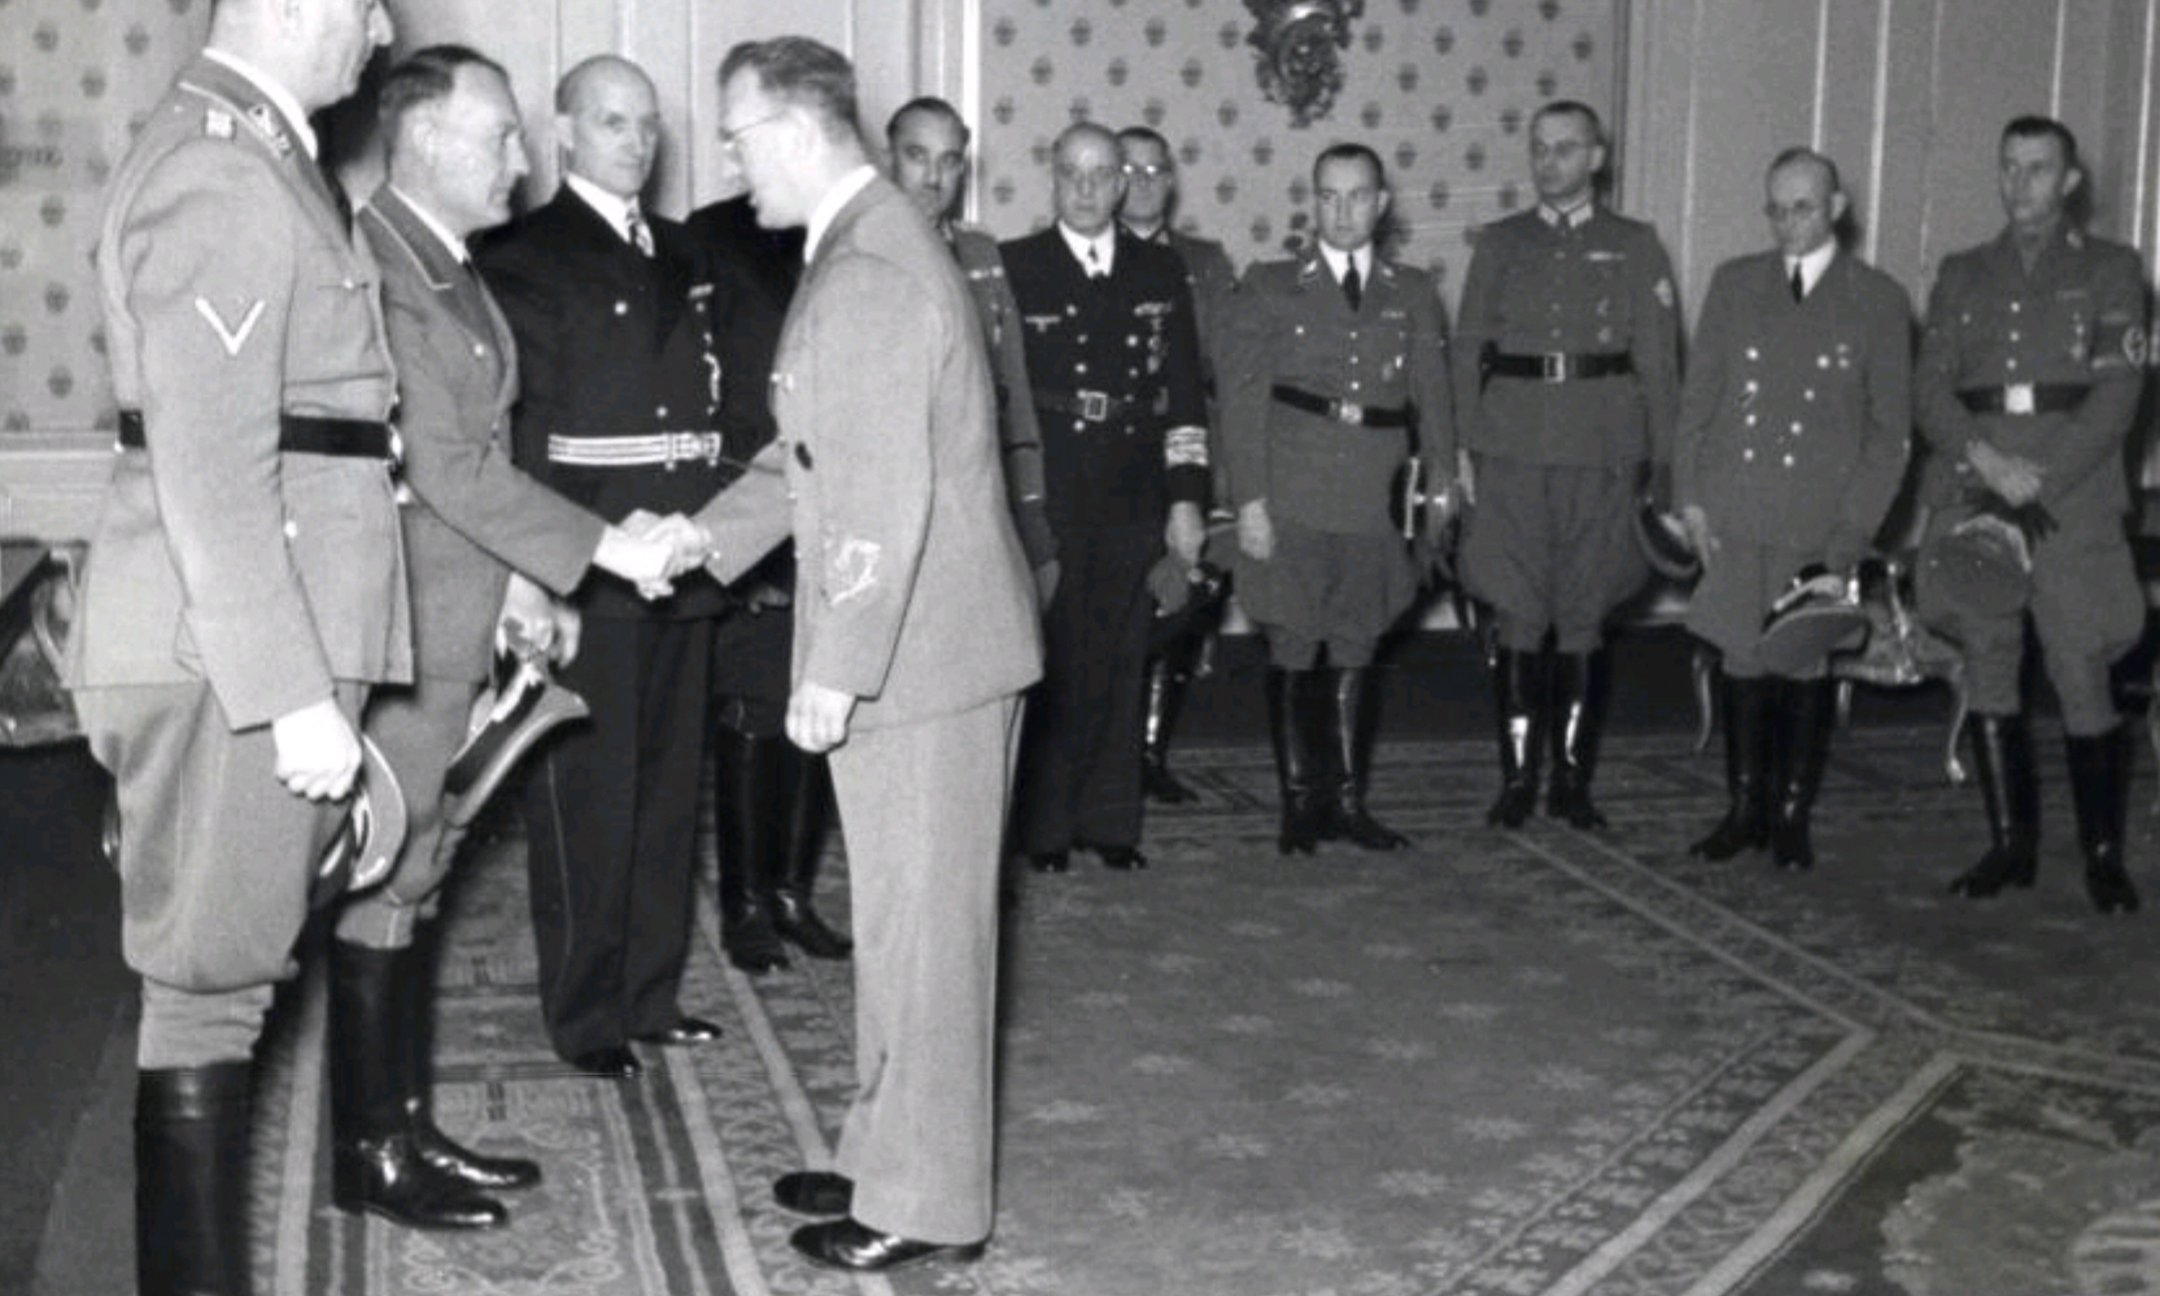 Reich Commissioner Arthur Seyss-Inquart shakes hands with Friedrich Wimmer. Next to him is Hanns Albin Rauter (1 January 1943).